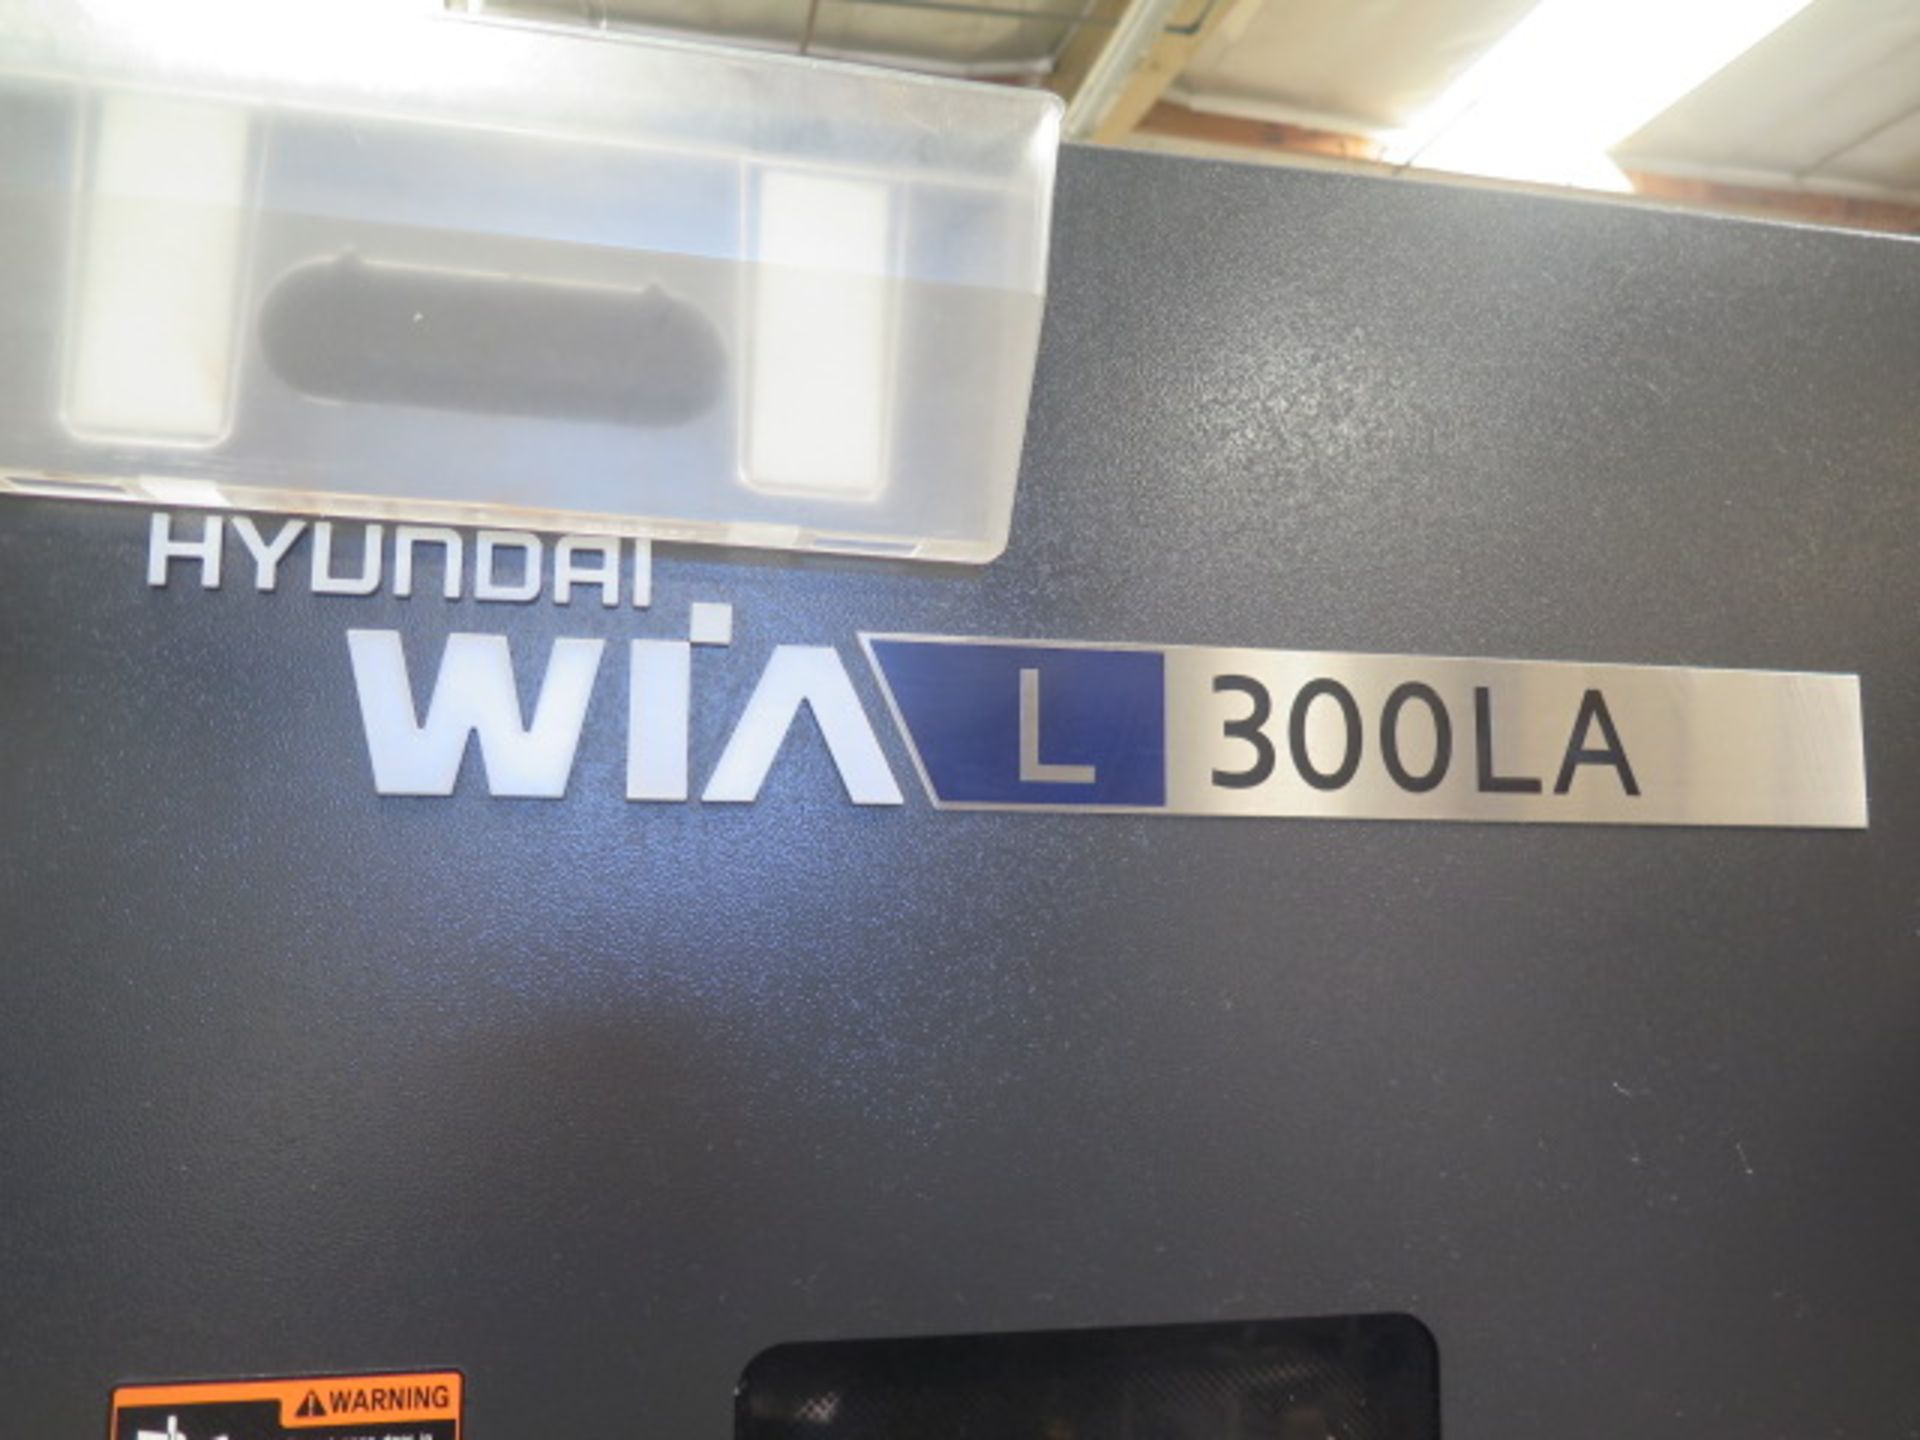 2016 Hyundai WIA L300LA CNC Turning Center s/n G3726-0083 w/ Fanuc i-Series Controls, SOLD AS IS - Image 3 of 20